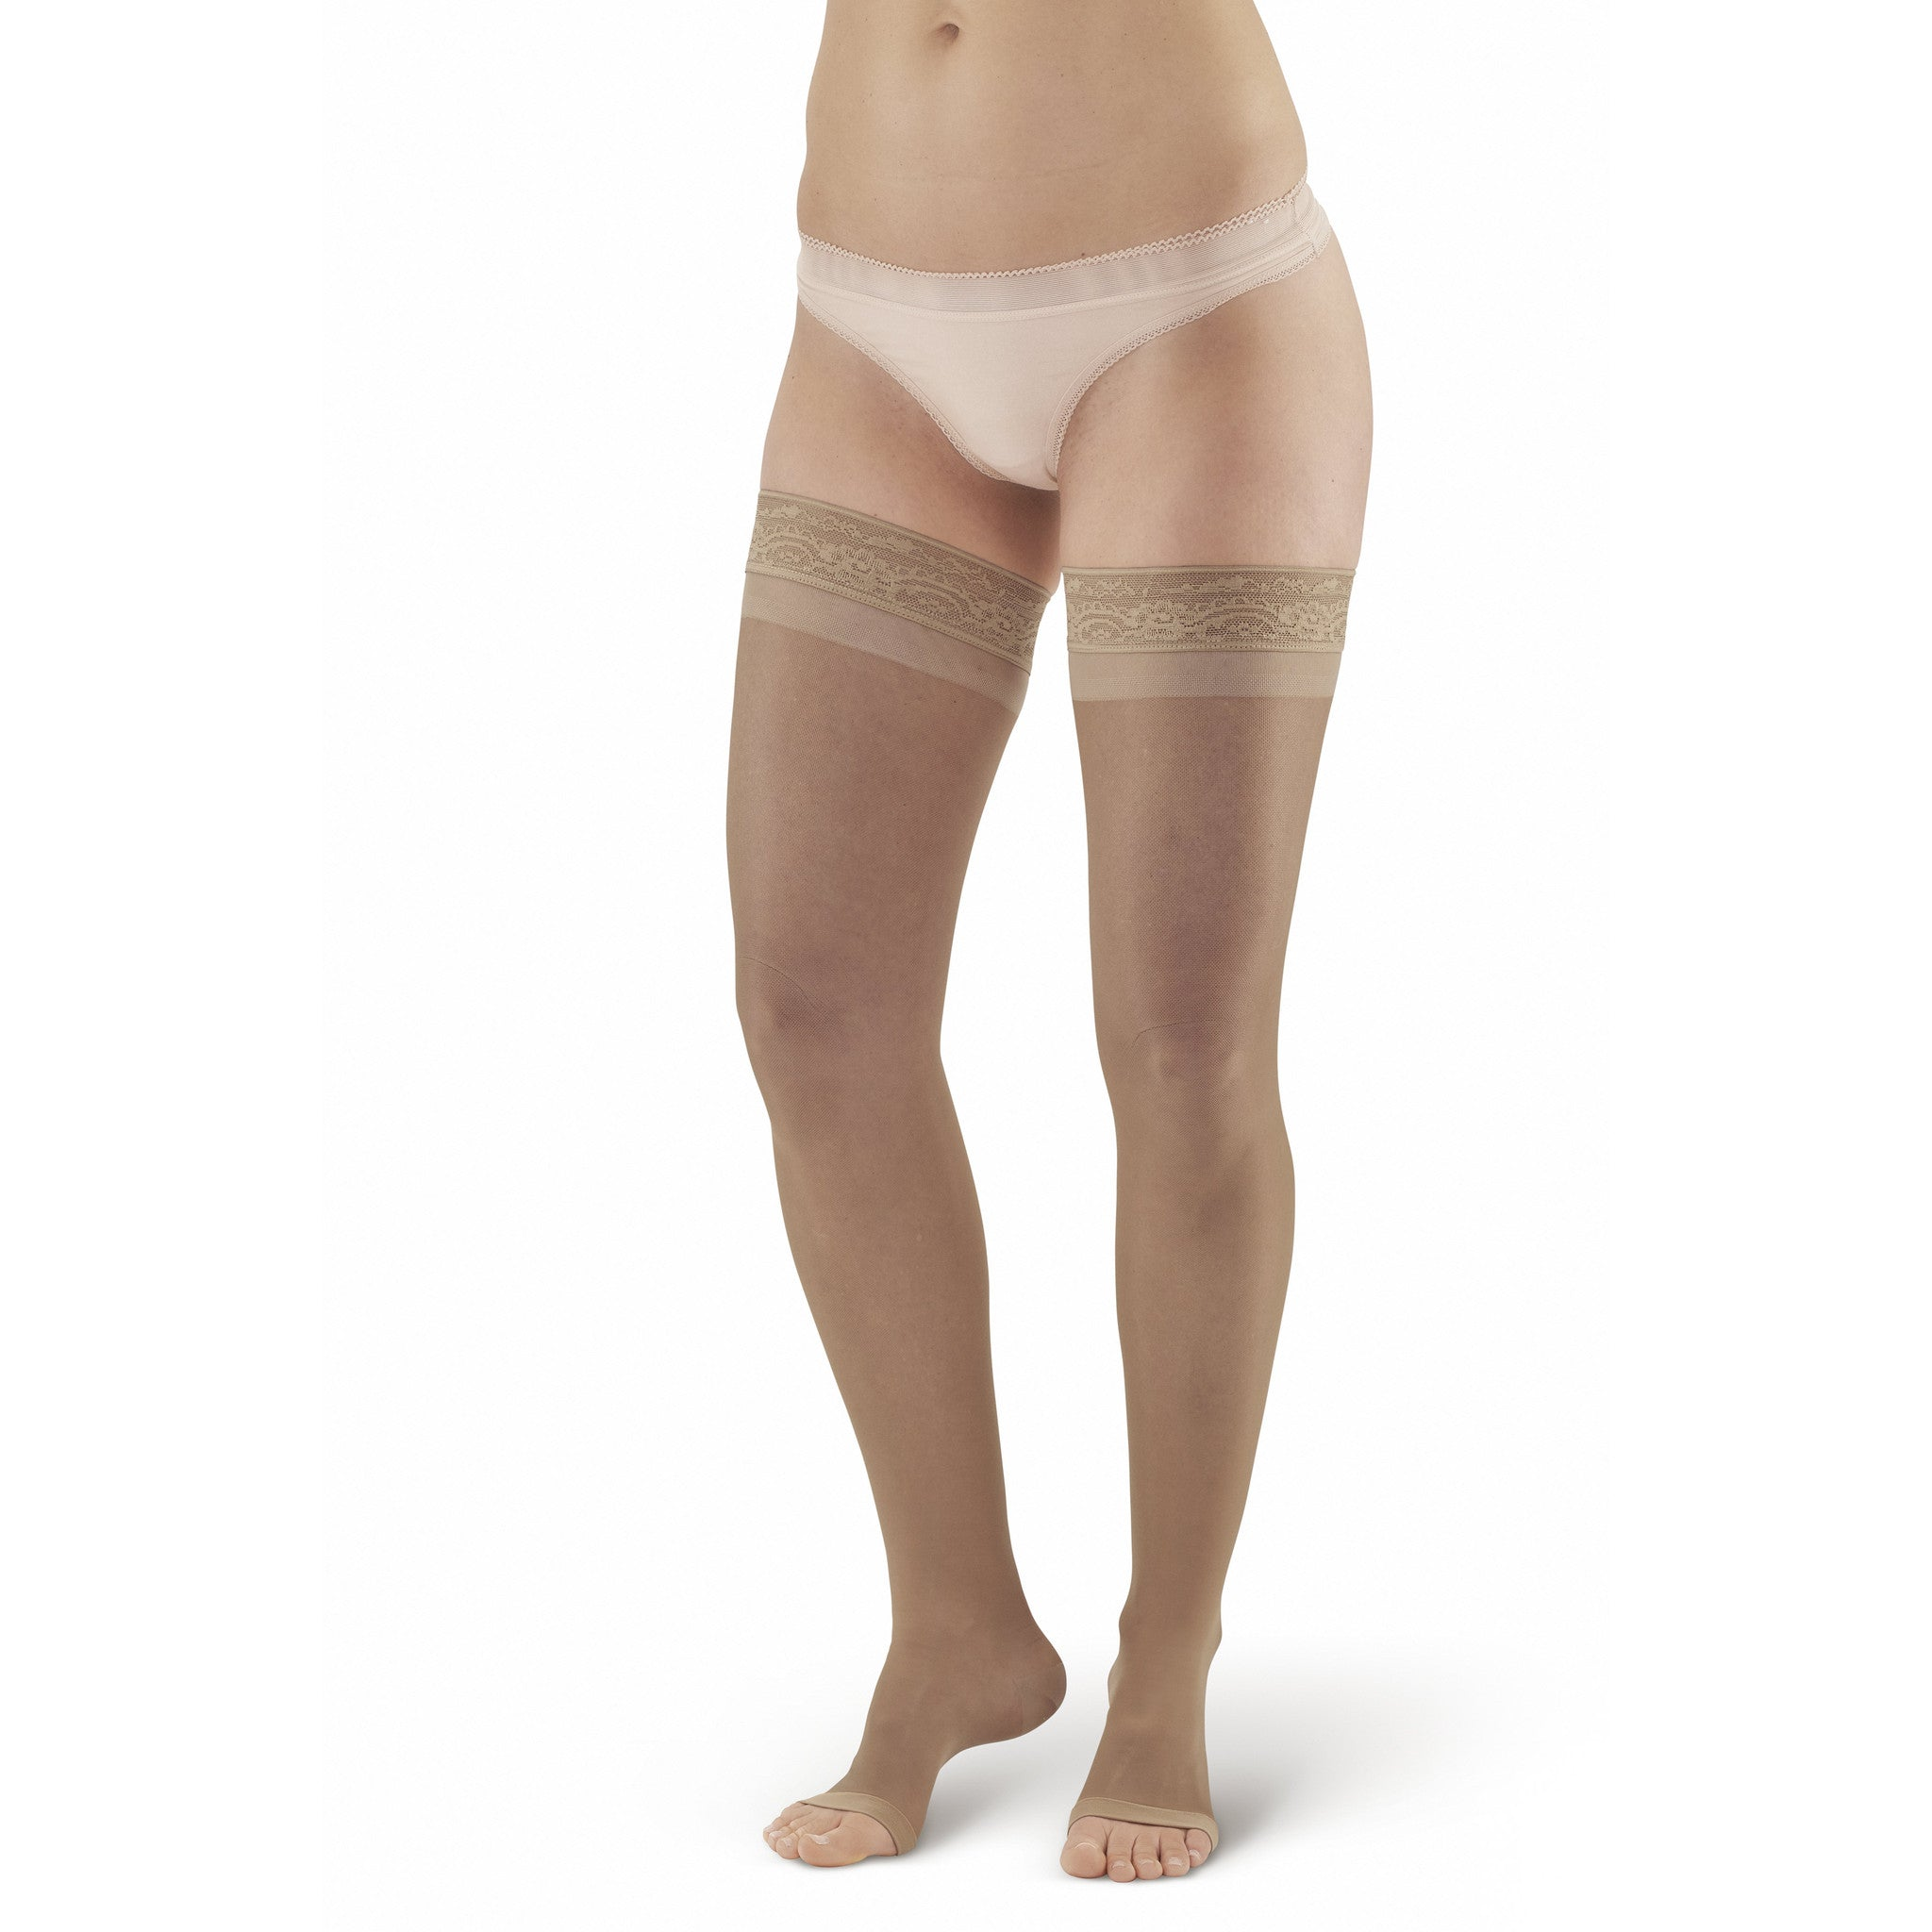 d066a2ecb9 ... AW Style 48 Sheer Support Open Toe Thigh Highs w/ Lace Band - 20- ...